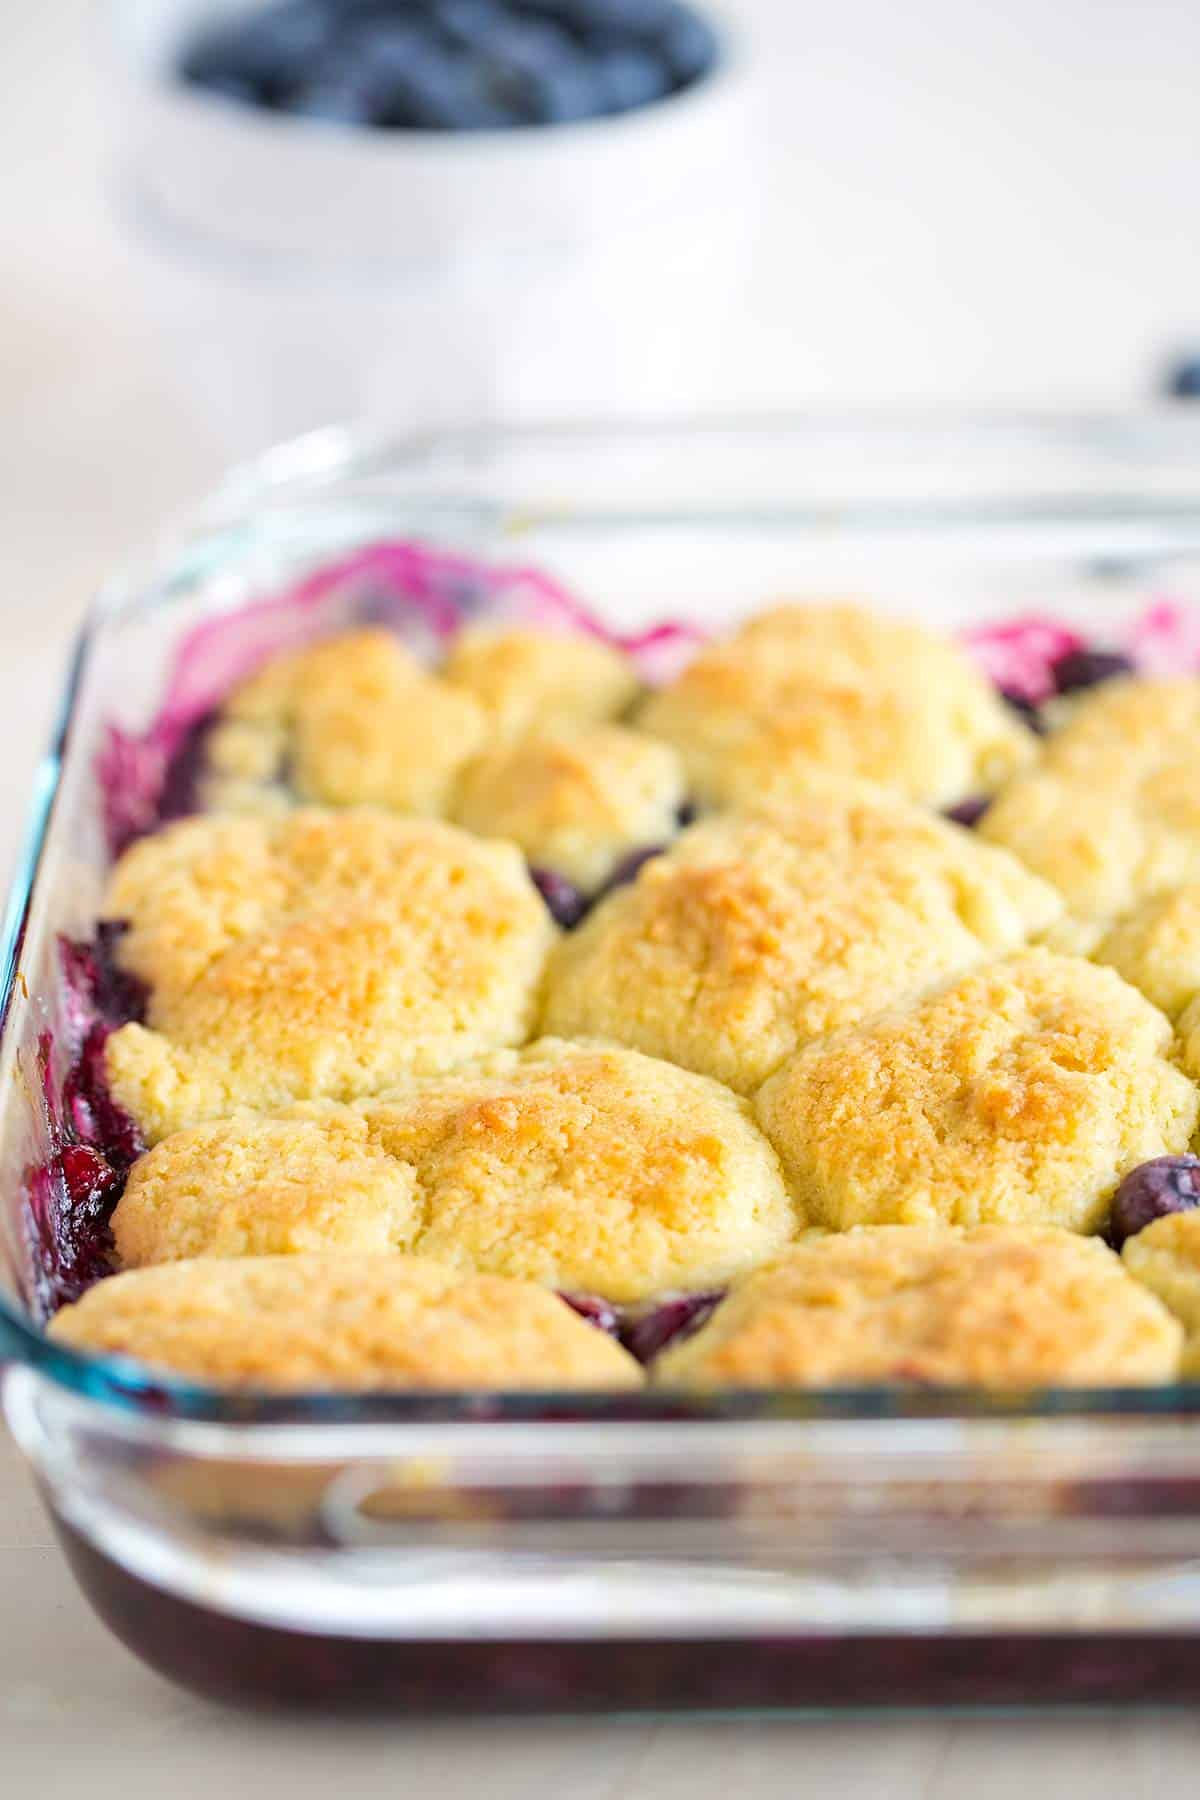 Blueberry cobbler in a glass pan just out of the oven.